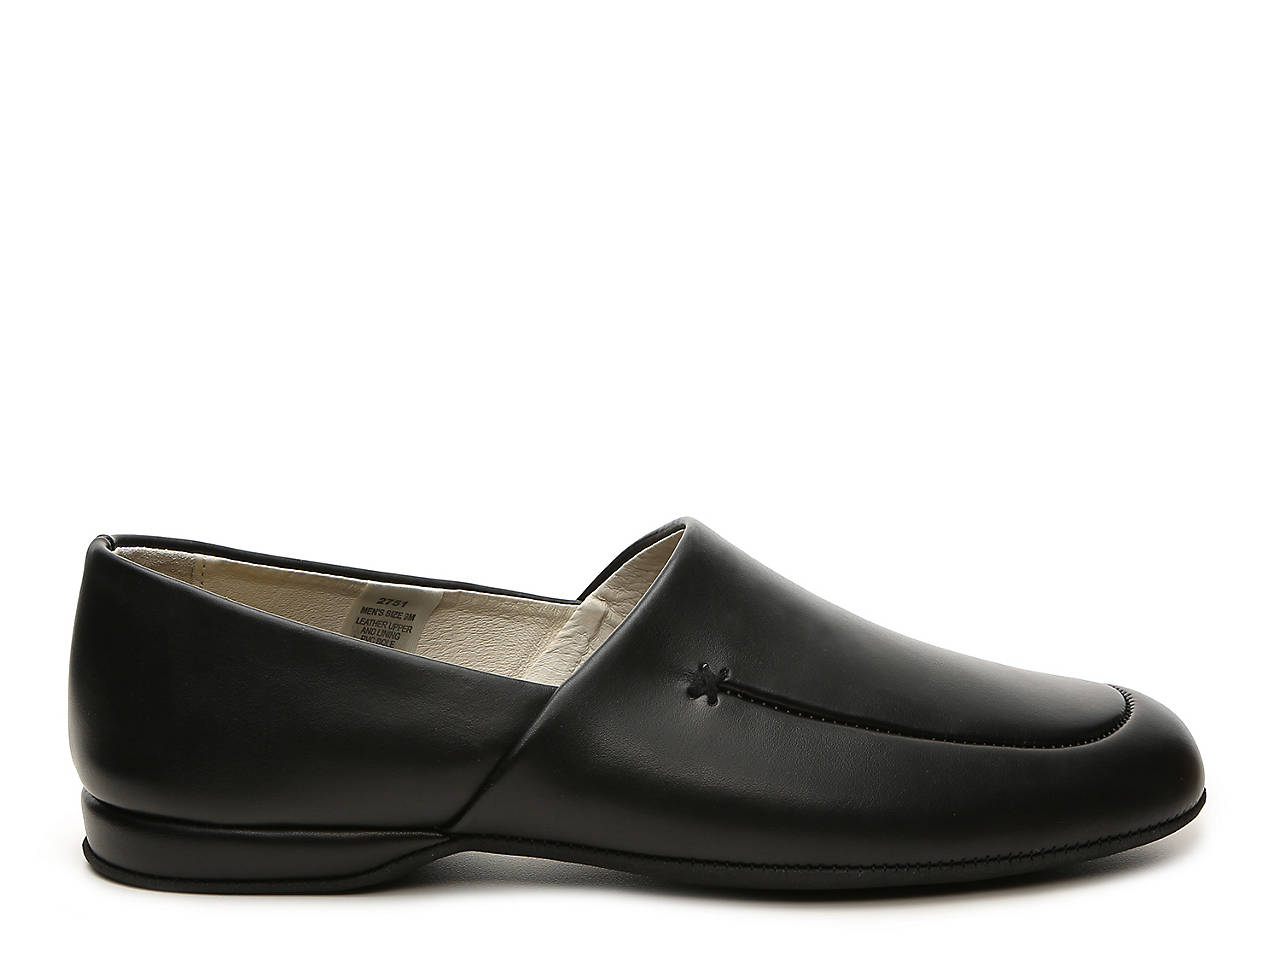 d3bfdc04a L.B. Evans Duke Opera Slipper Men's Shoes | DSW